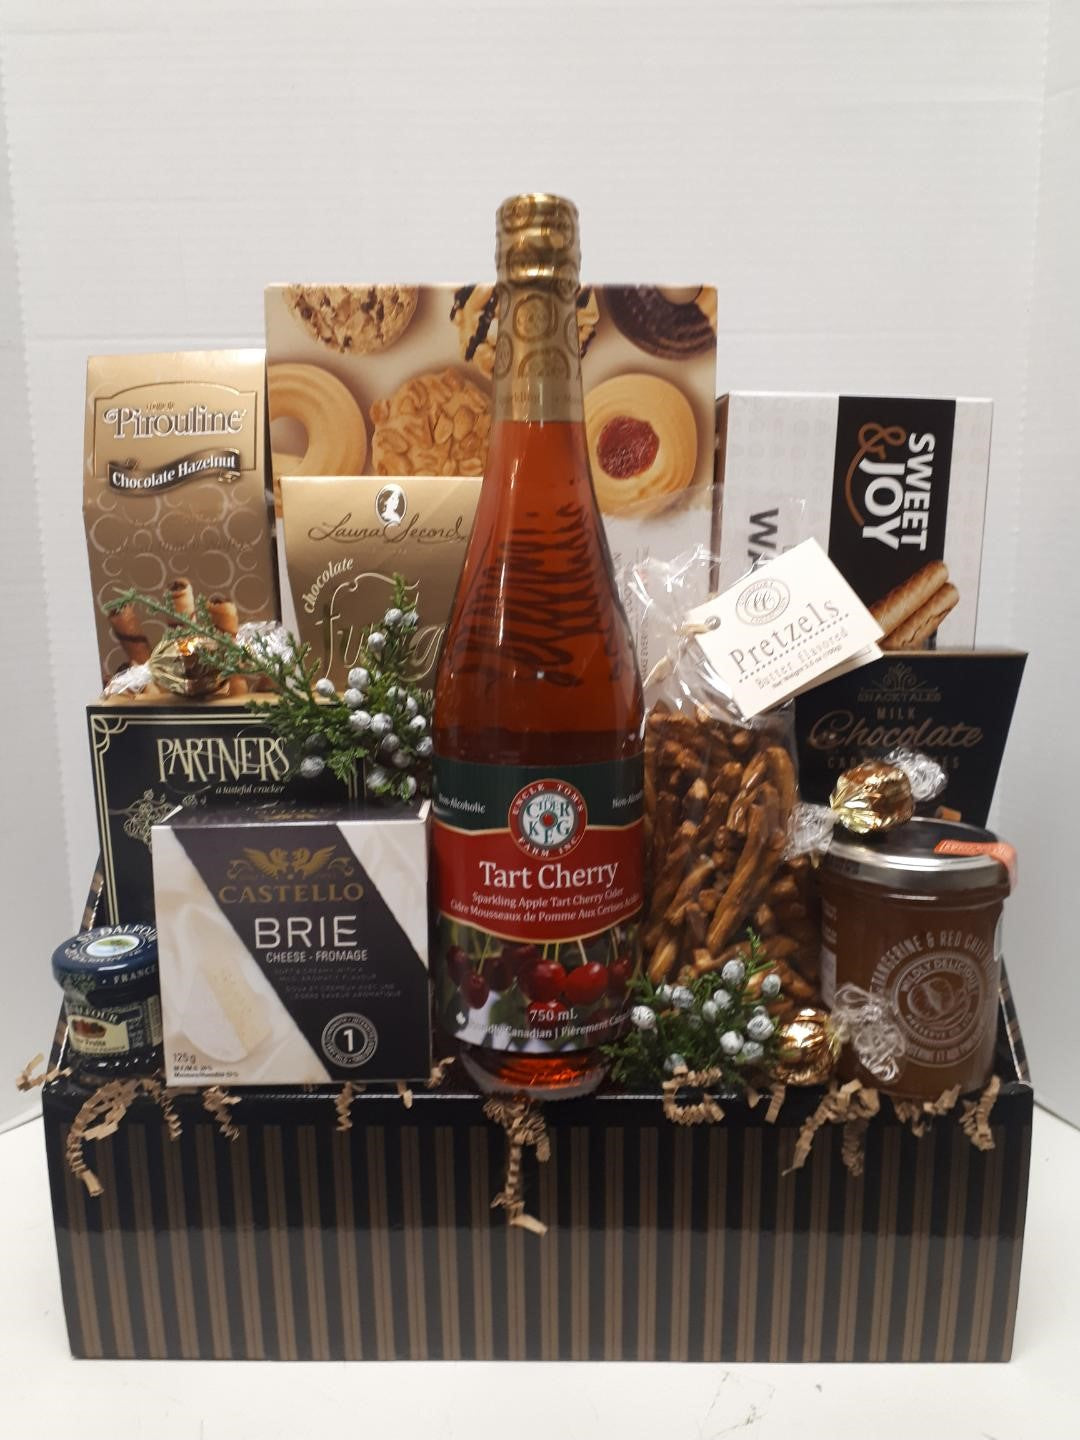 Gourmet Gift set in Black and Gold Box